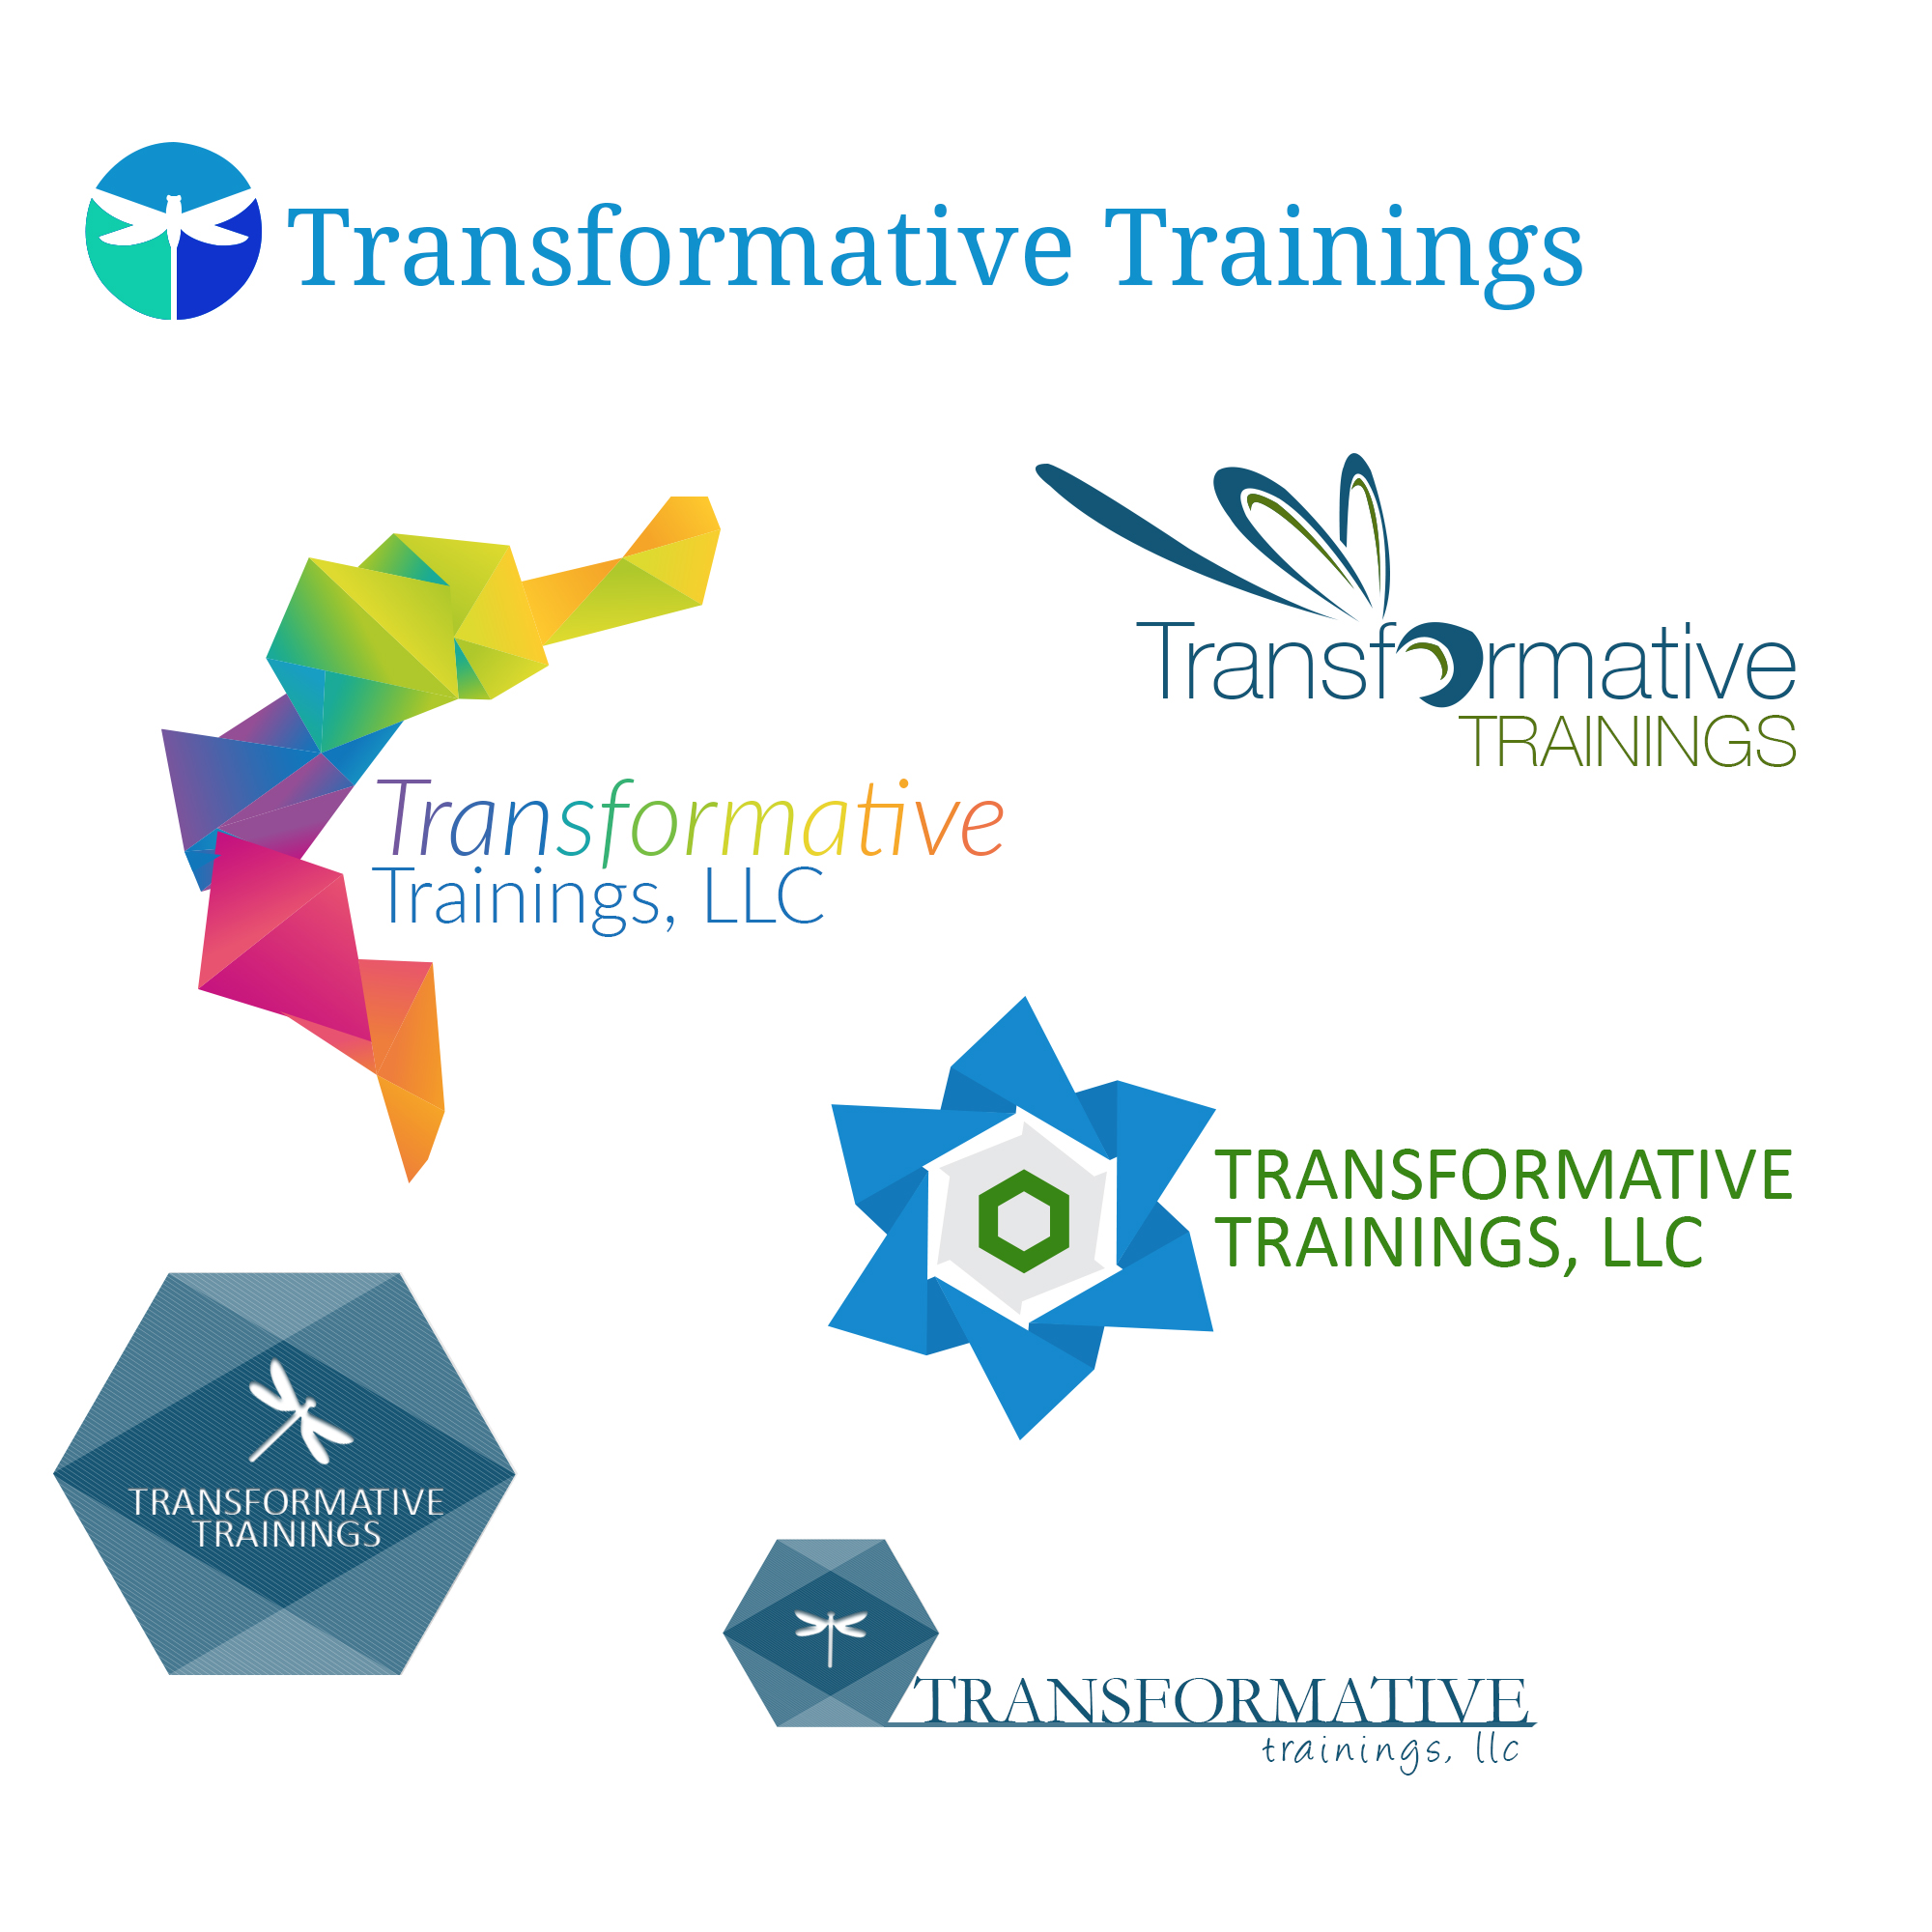 Transformative Trainings - Logo Designs.jpg